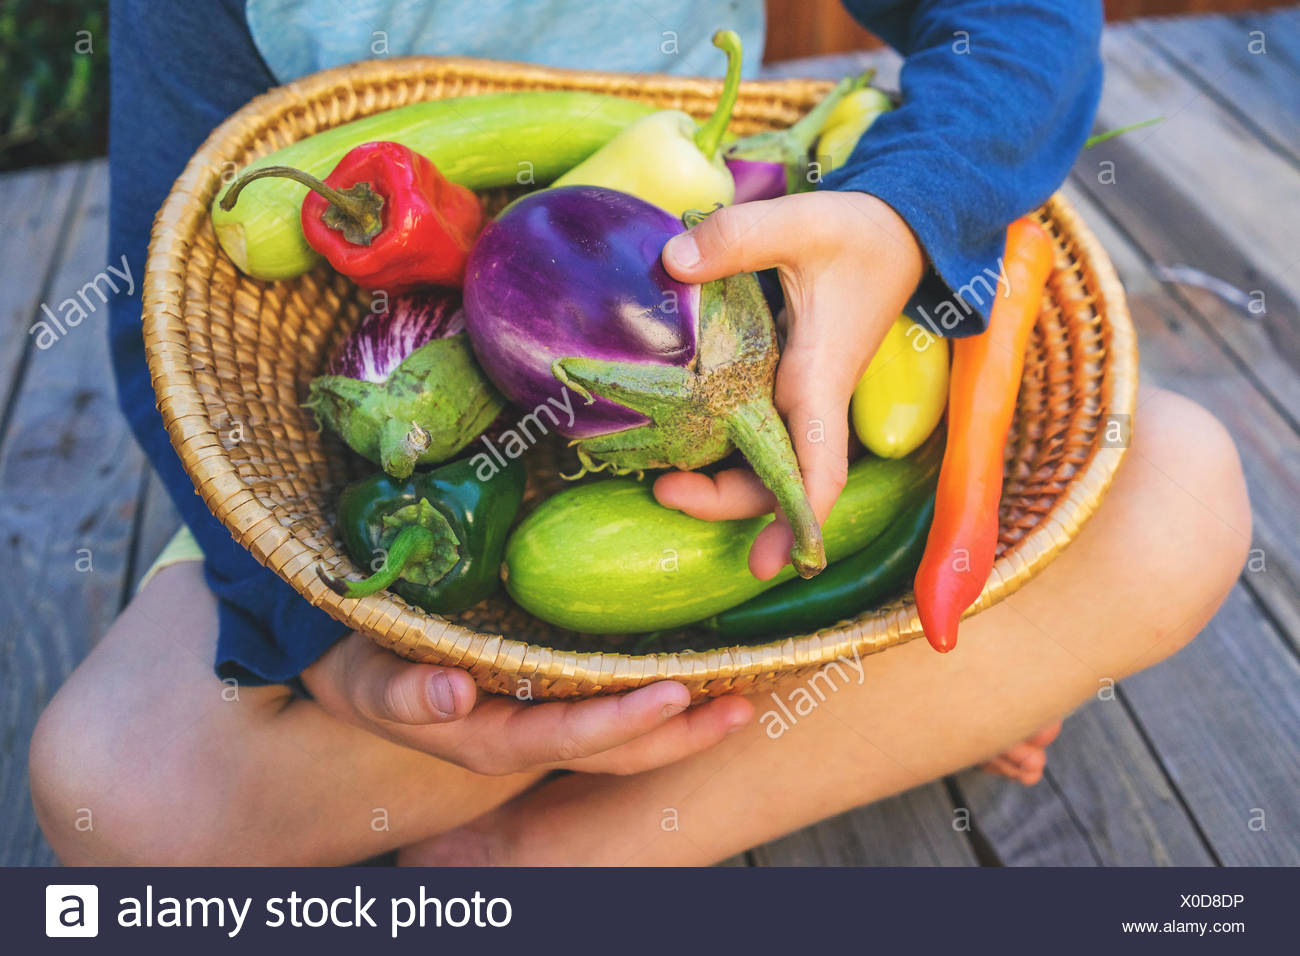 Boy sitting cross legged with a basket of vegetables - Stock Image